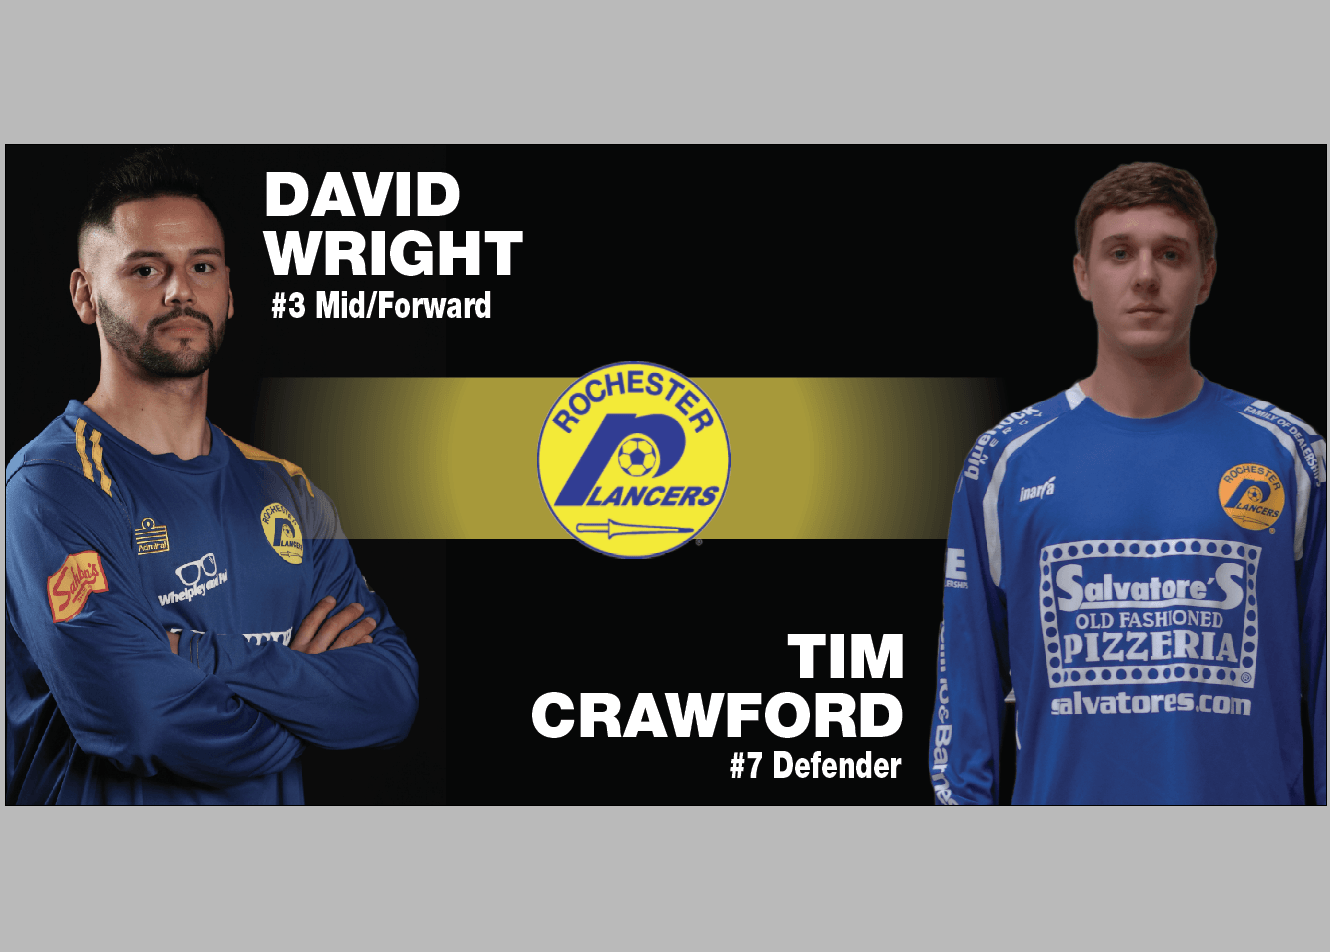 Lancers Sign Tim Crawford and David Wright